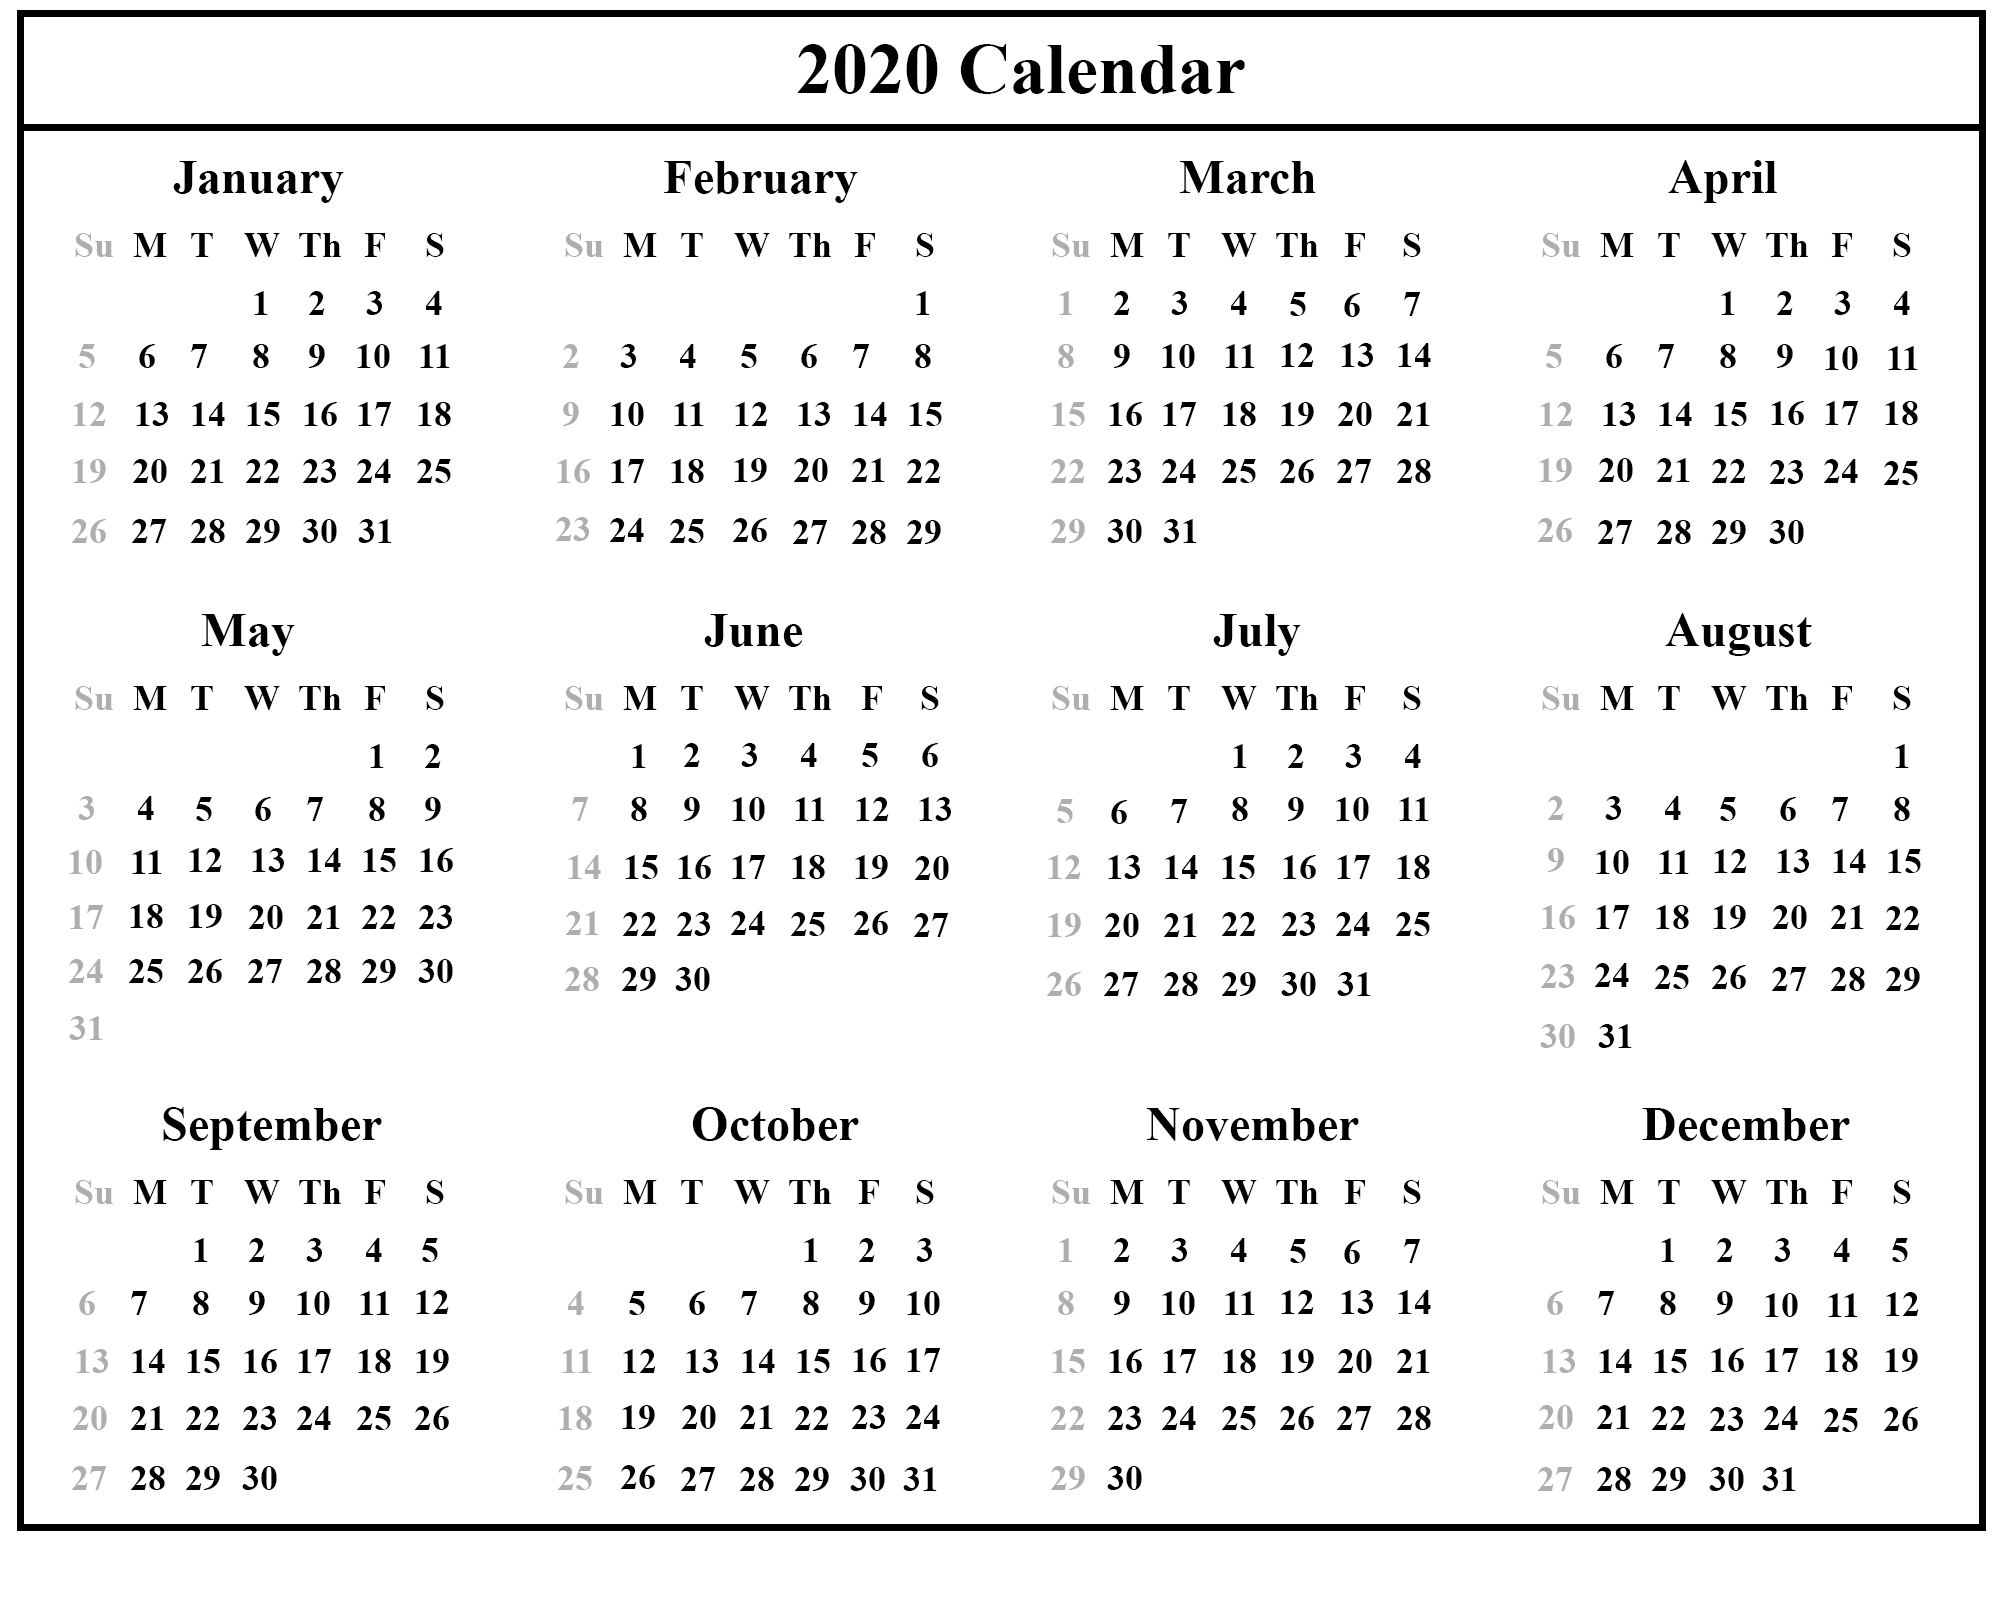 Editable 2020 Calendar Printable Template Blank With Notes-6 Month Calendar 2020 Template Free